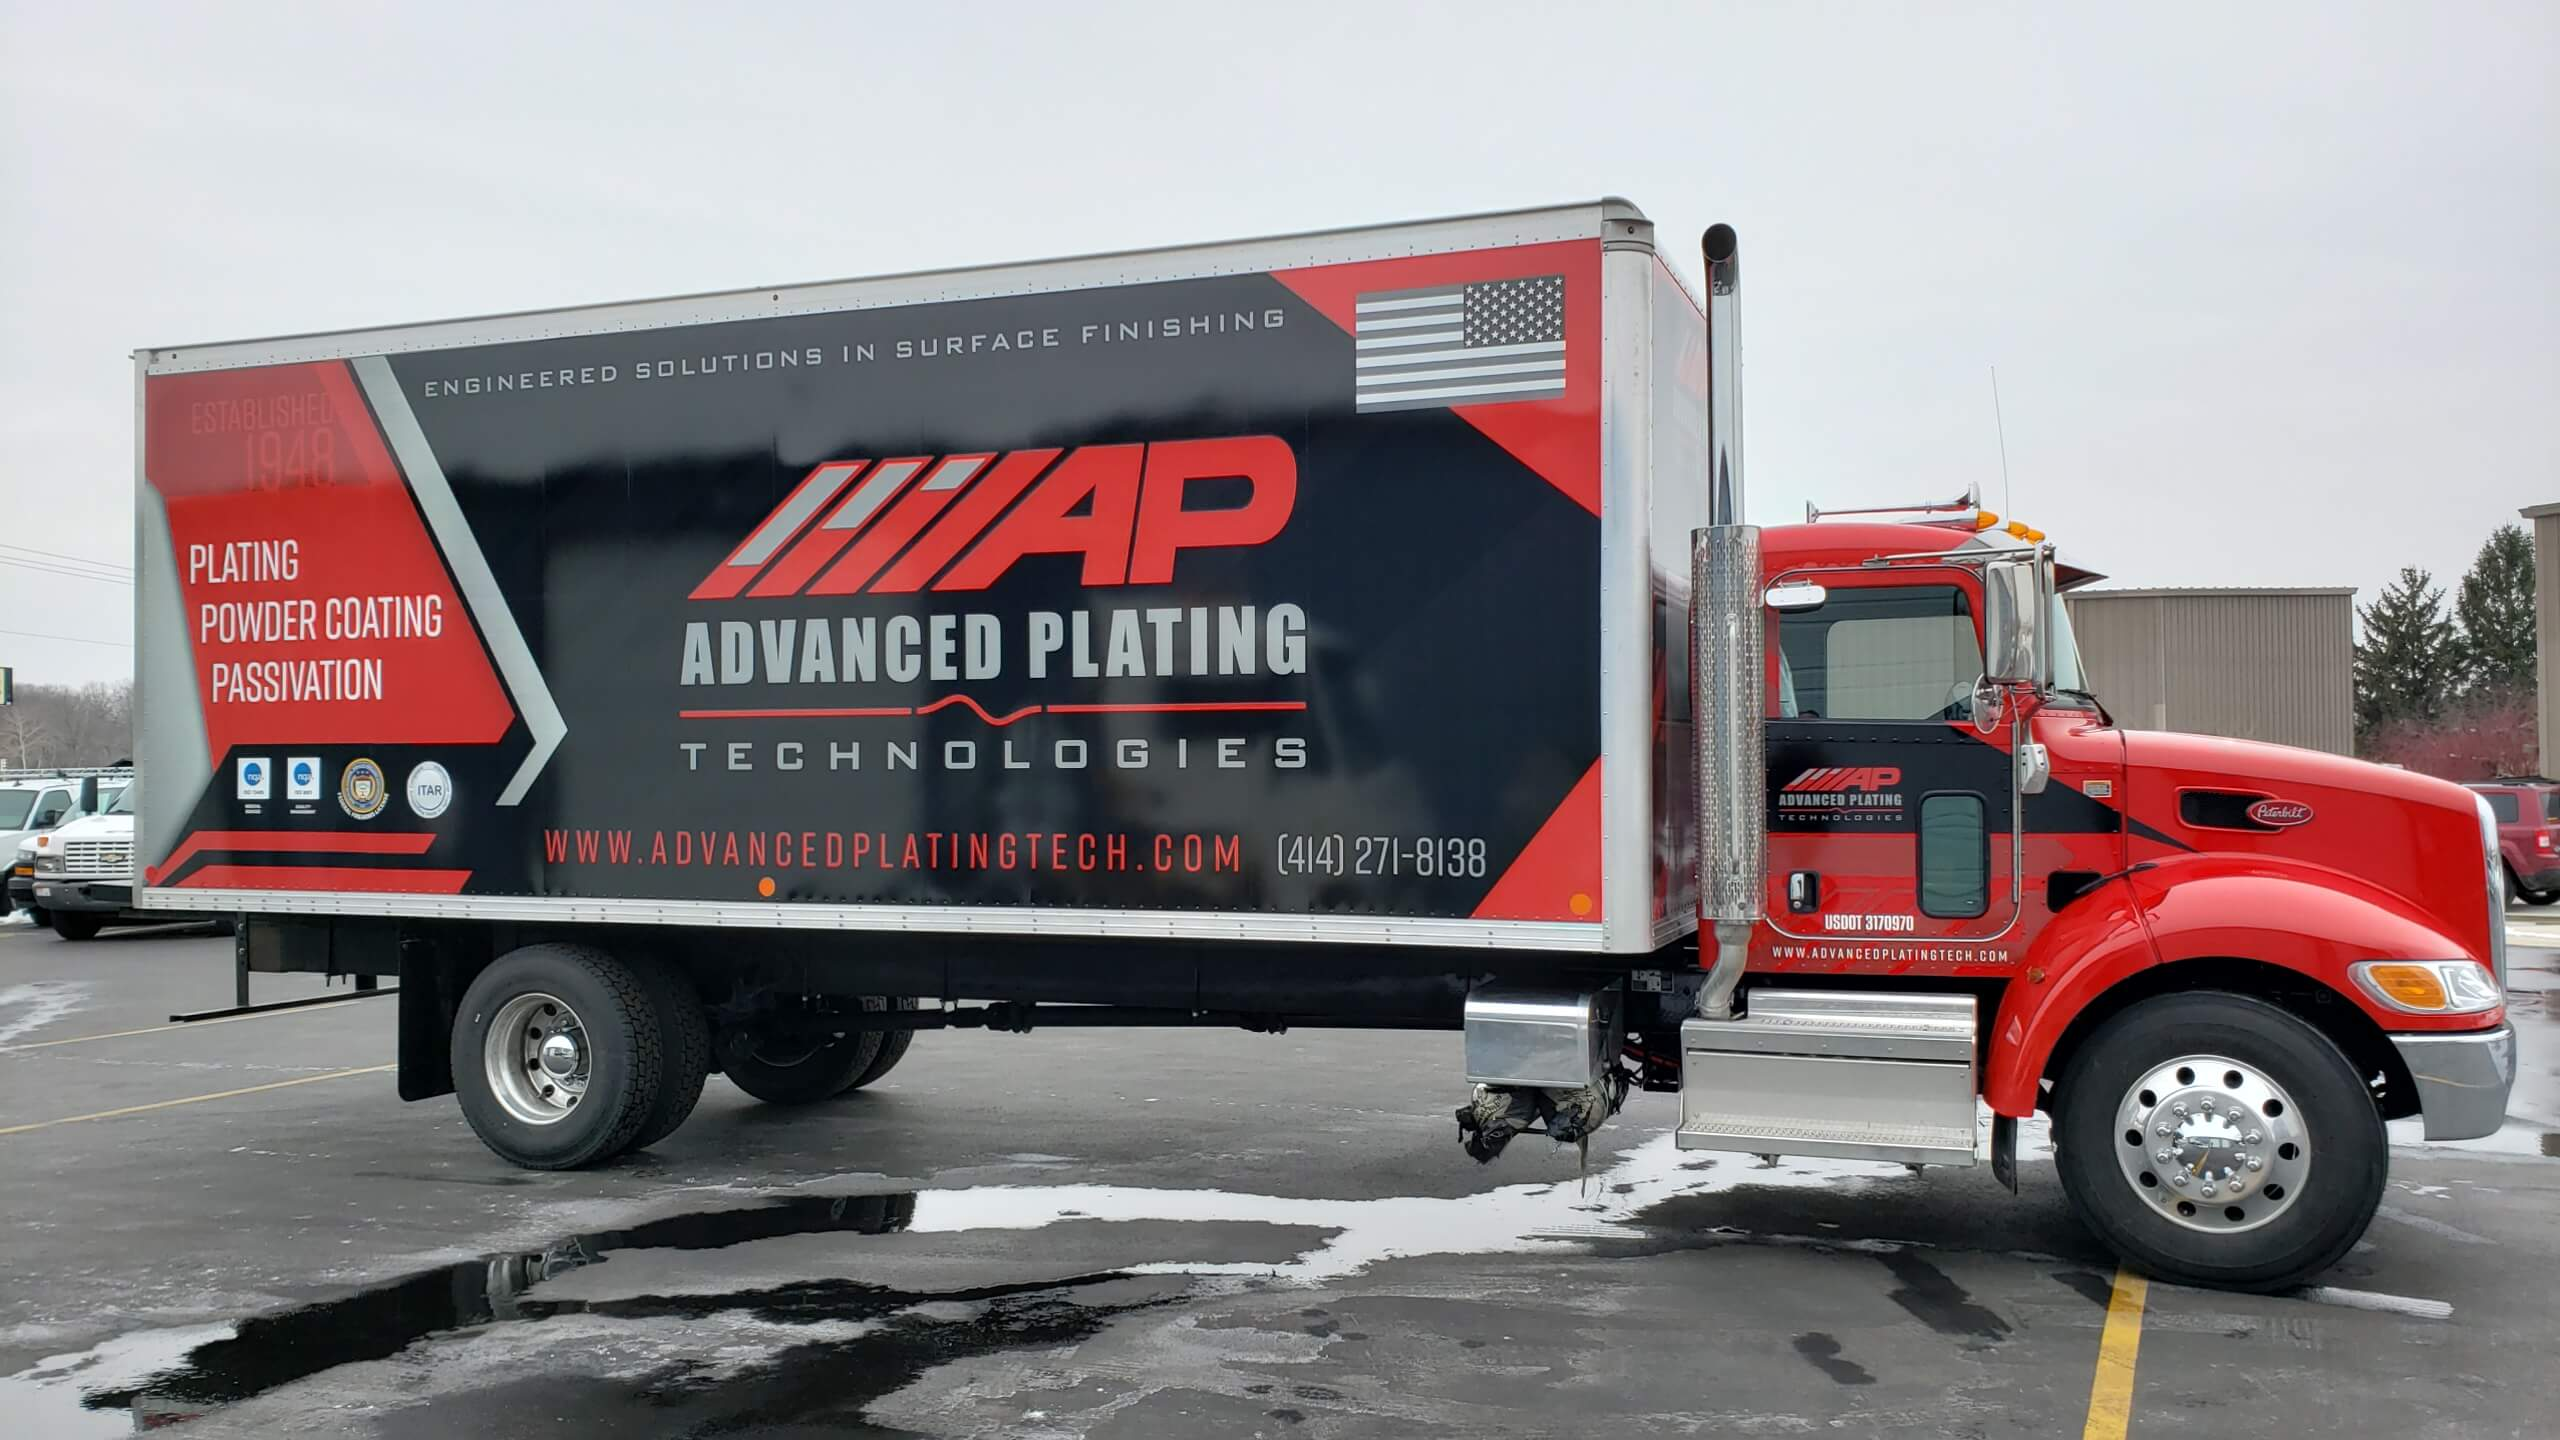 Red and Black advanced plating truck and trailer wrap